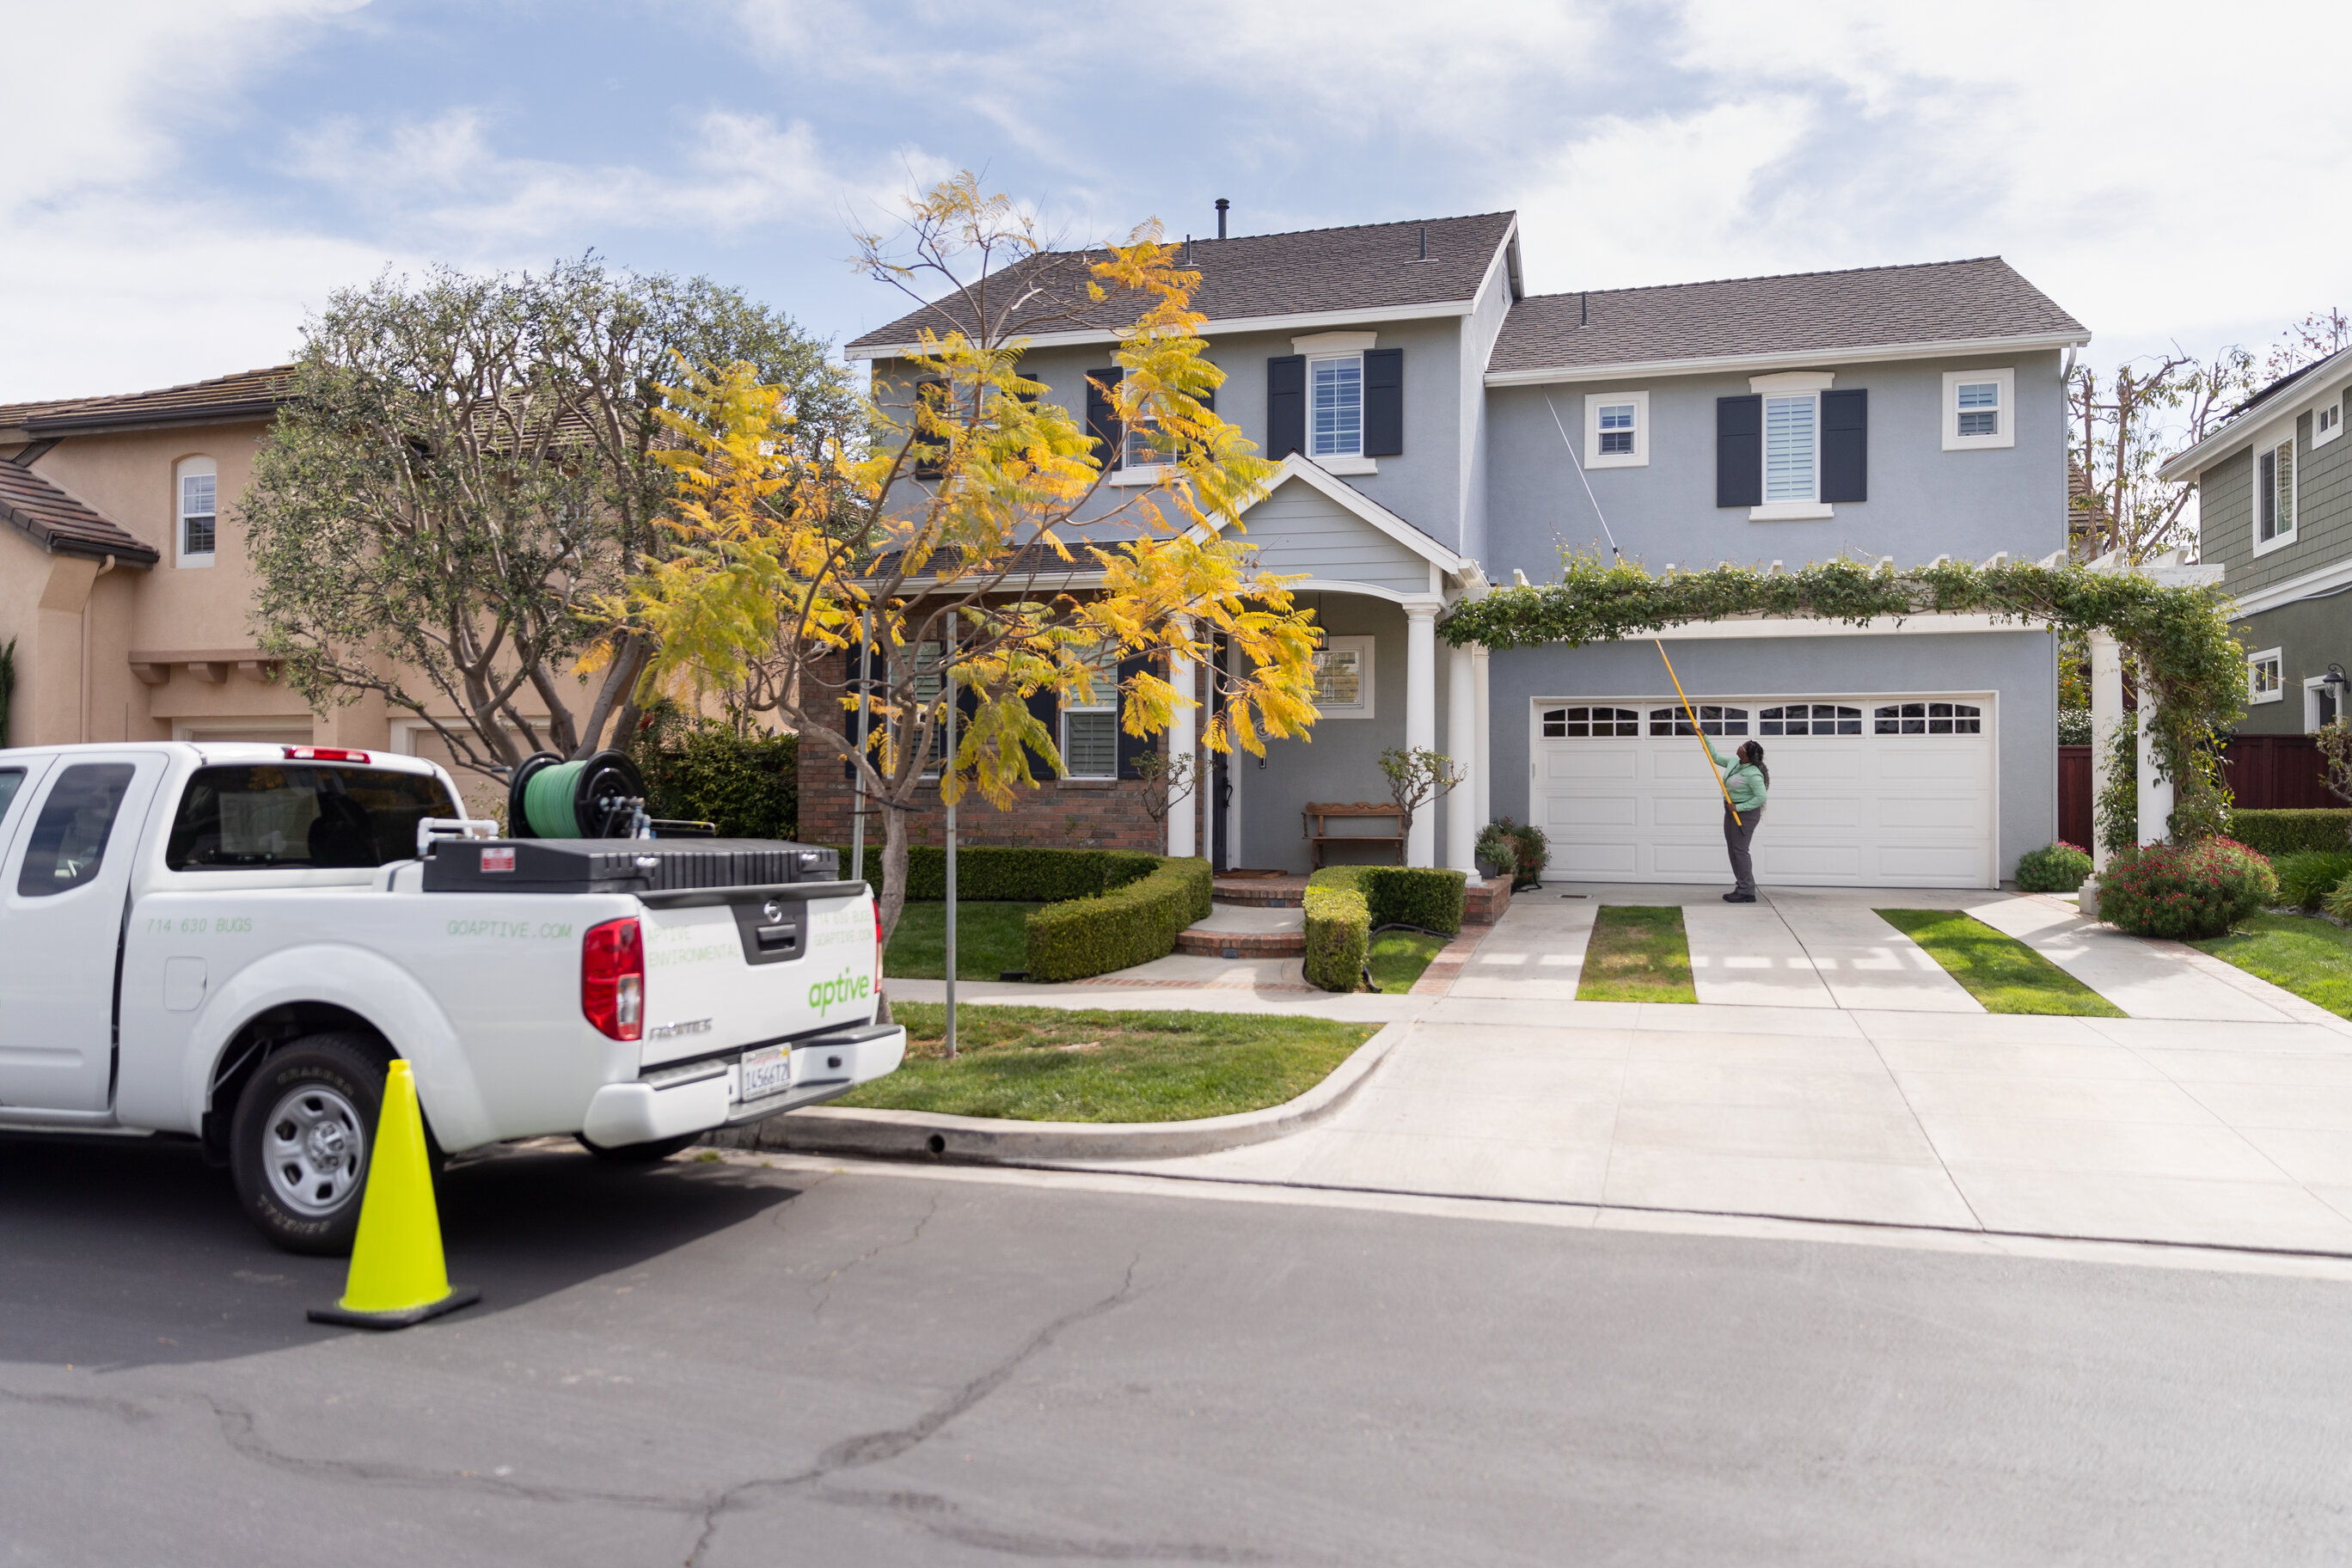 A pest control specialist wearing a green shirt and grey pants uses a yellow pest control wand on the exterior of a white garage door on a grey house. Seen on the street is a white Aptive pick-up truck with other pest control tools in the bed.